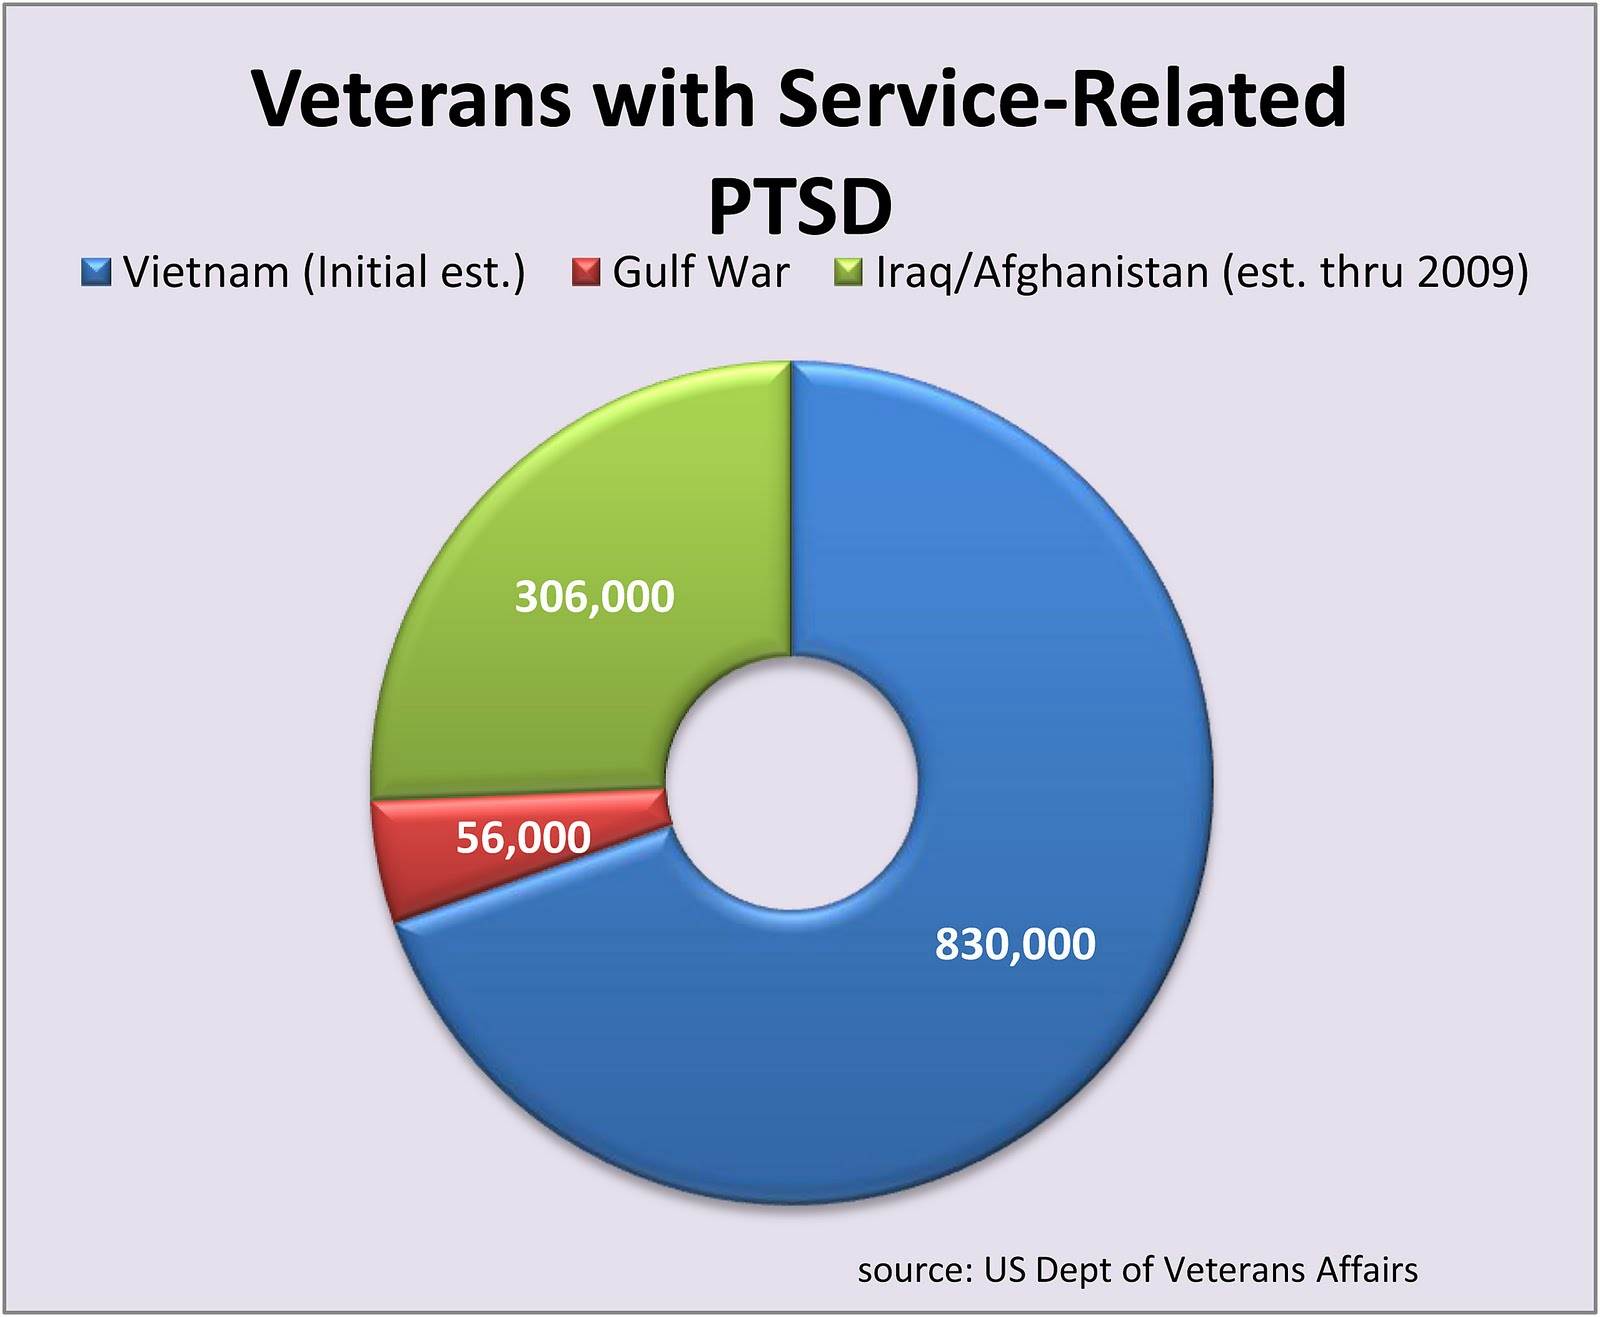 Charts and Graphs on PTSD http://pgionfriddo.blogspot.com/p/our-health-policy-matters-charts.html